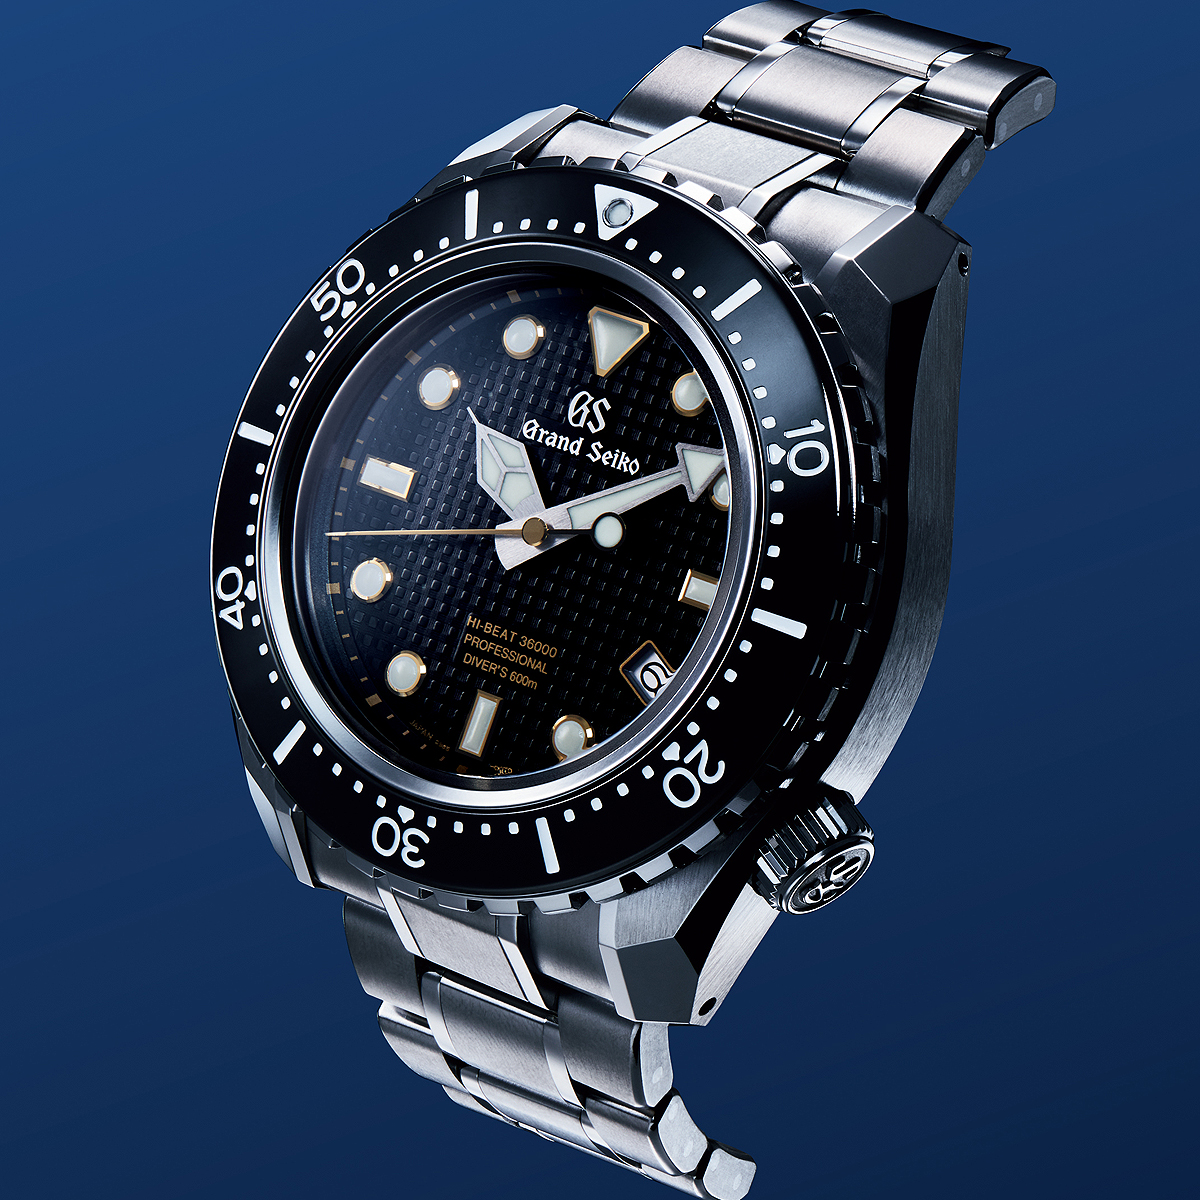 Grand Seiko Hi-Beat 36000 Divers LE